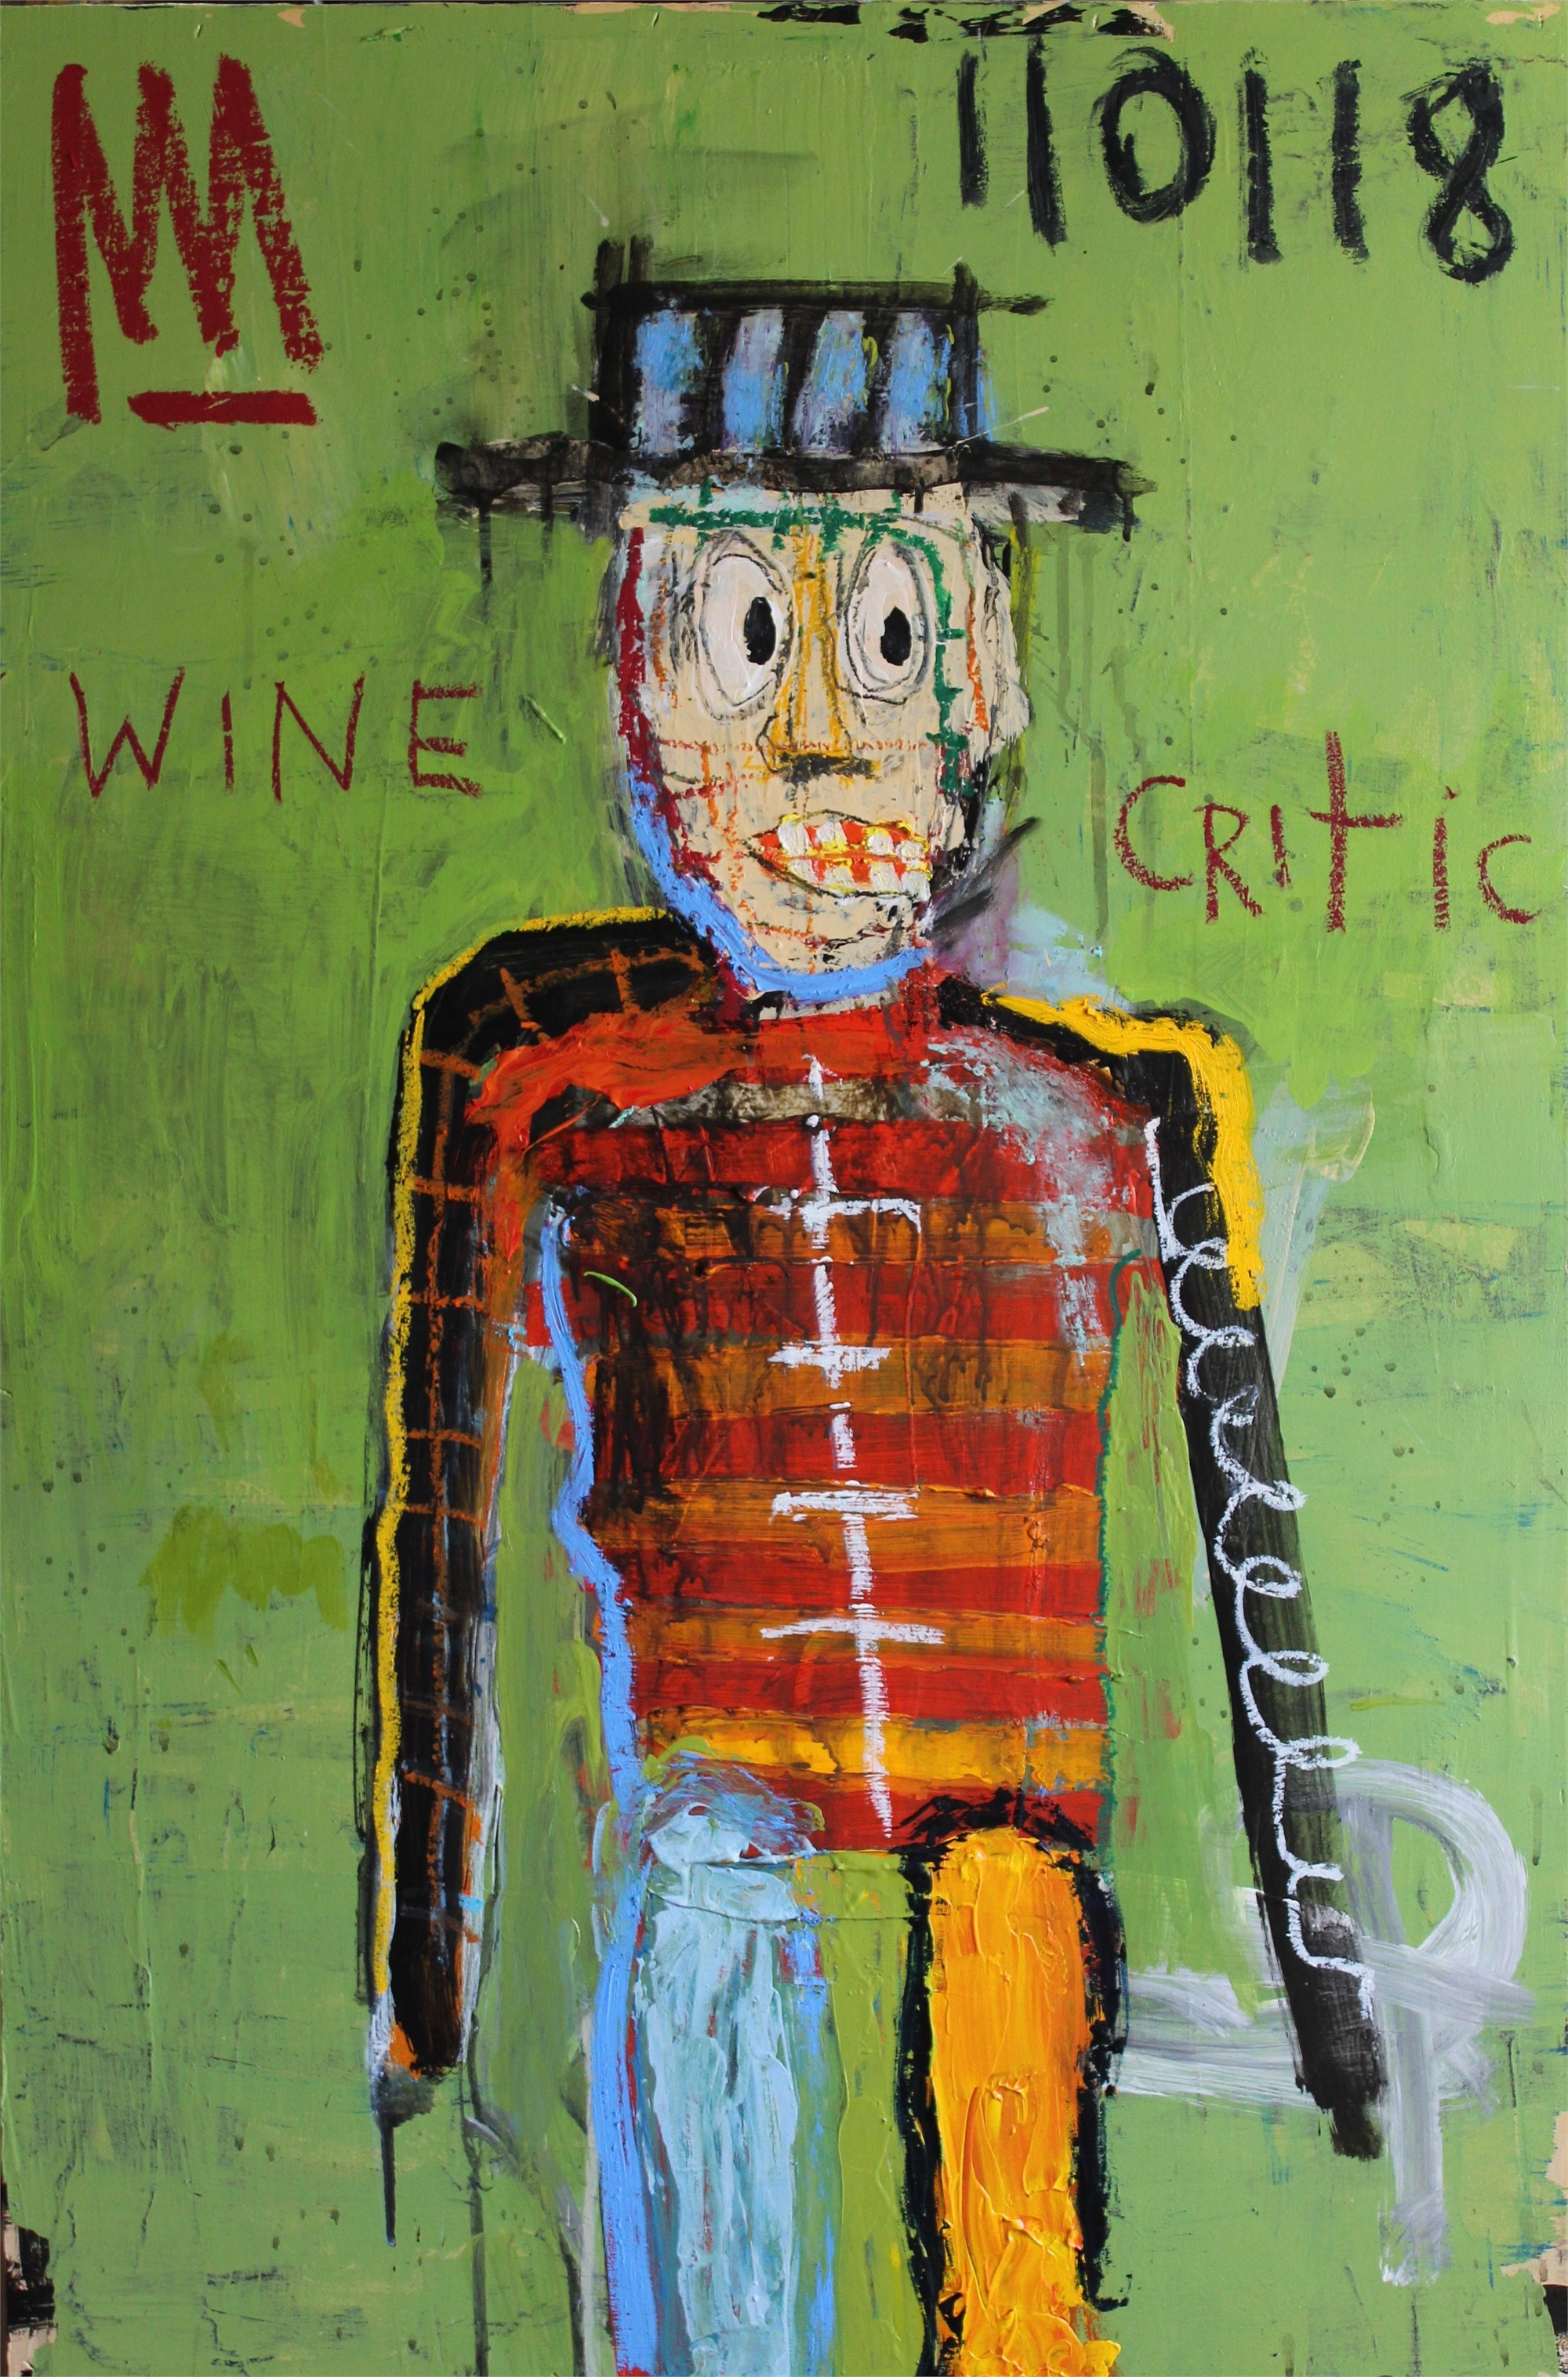 Wine Critic With Hangover by Michael Snodgrass